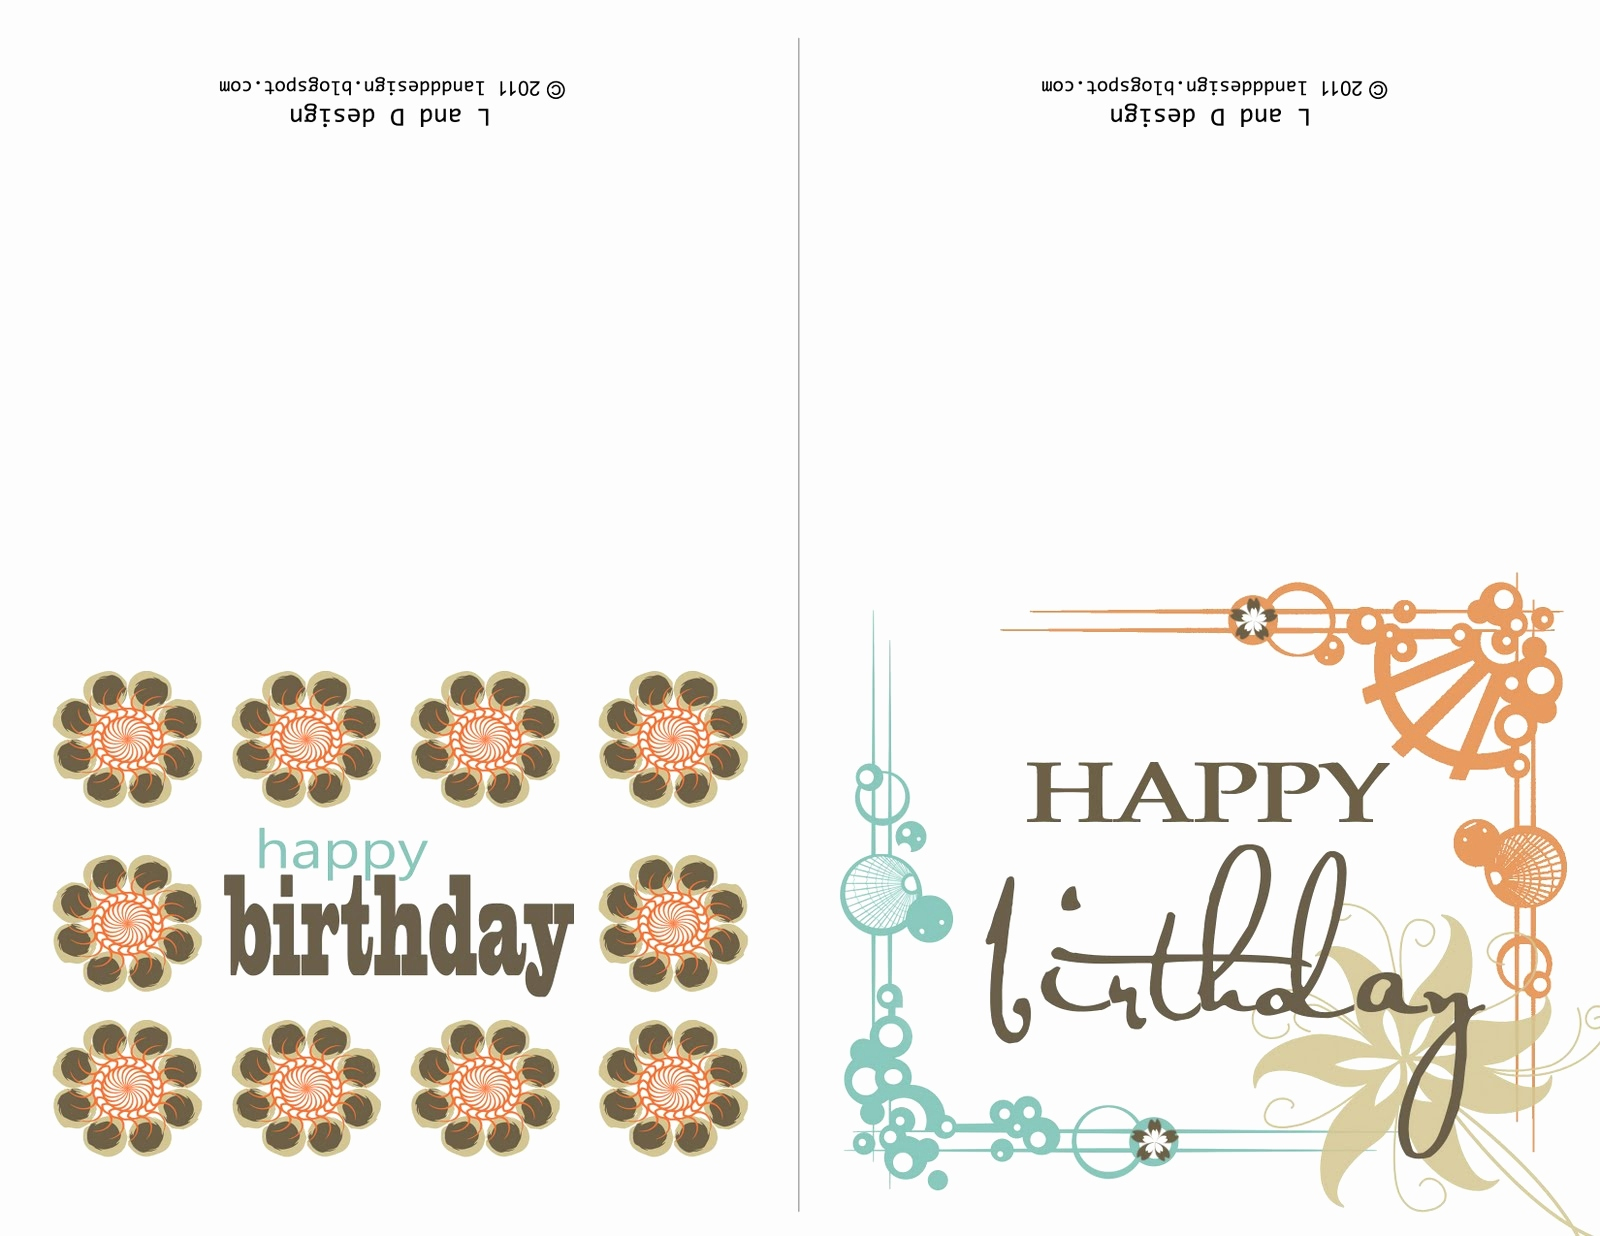 Free Online Funny Birthday Cards Printable Fresh Free Line Funny - Free Online Funny Birthday Cards Printable